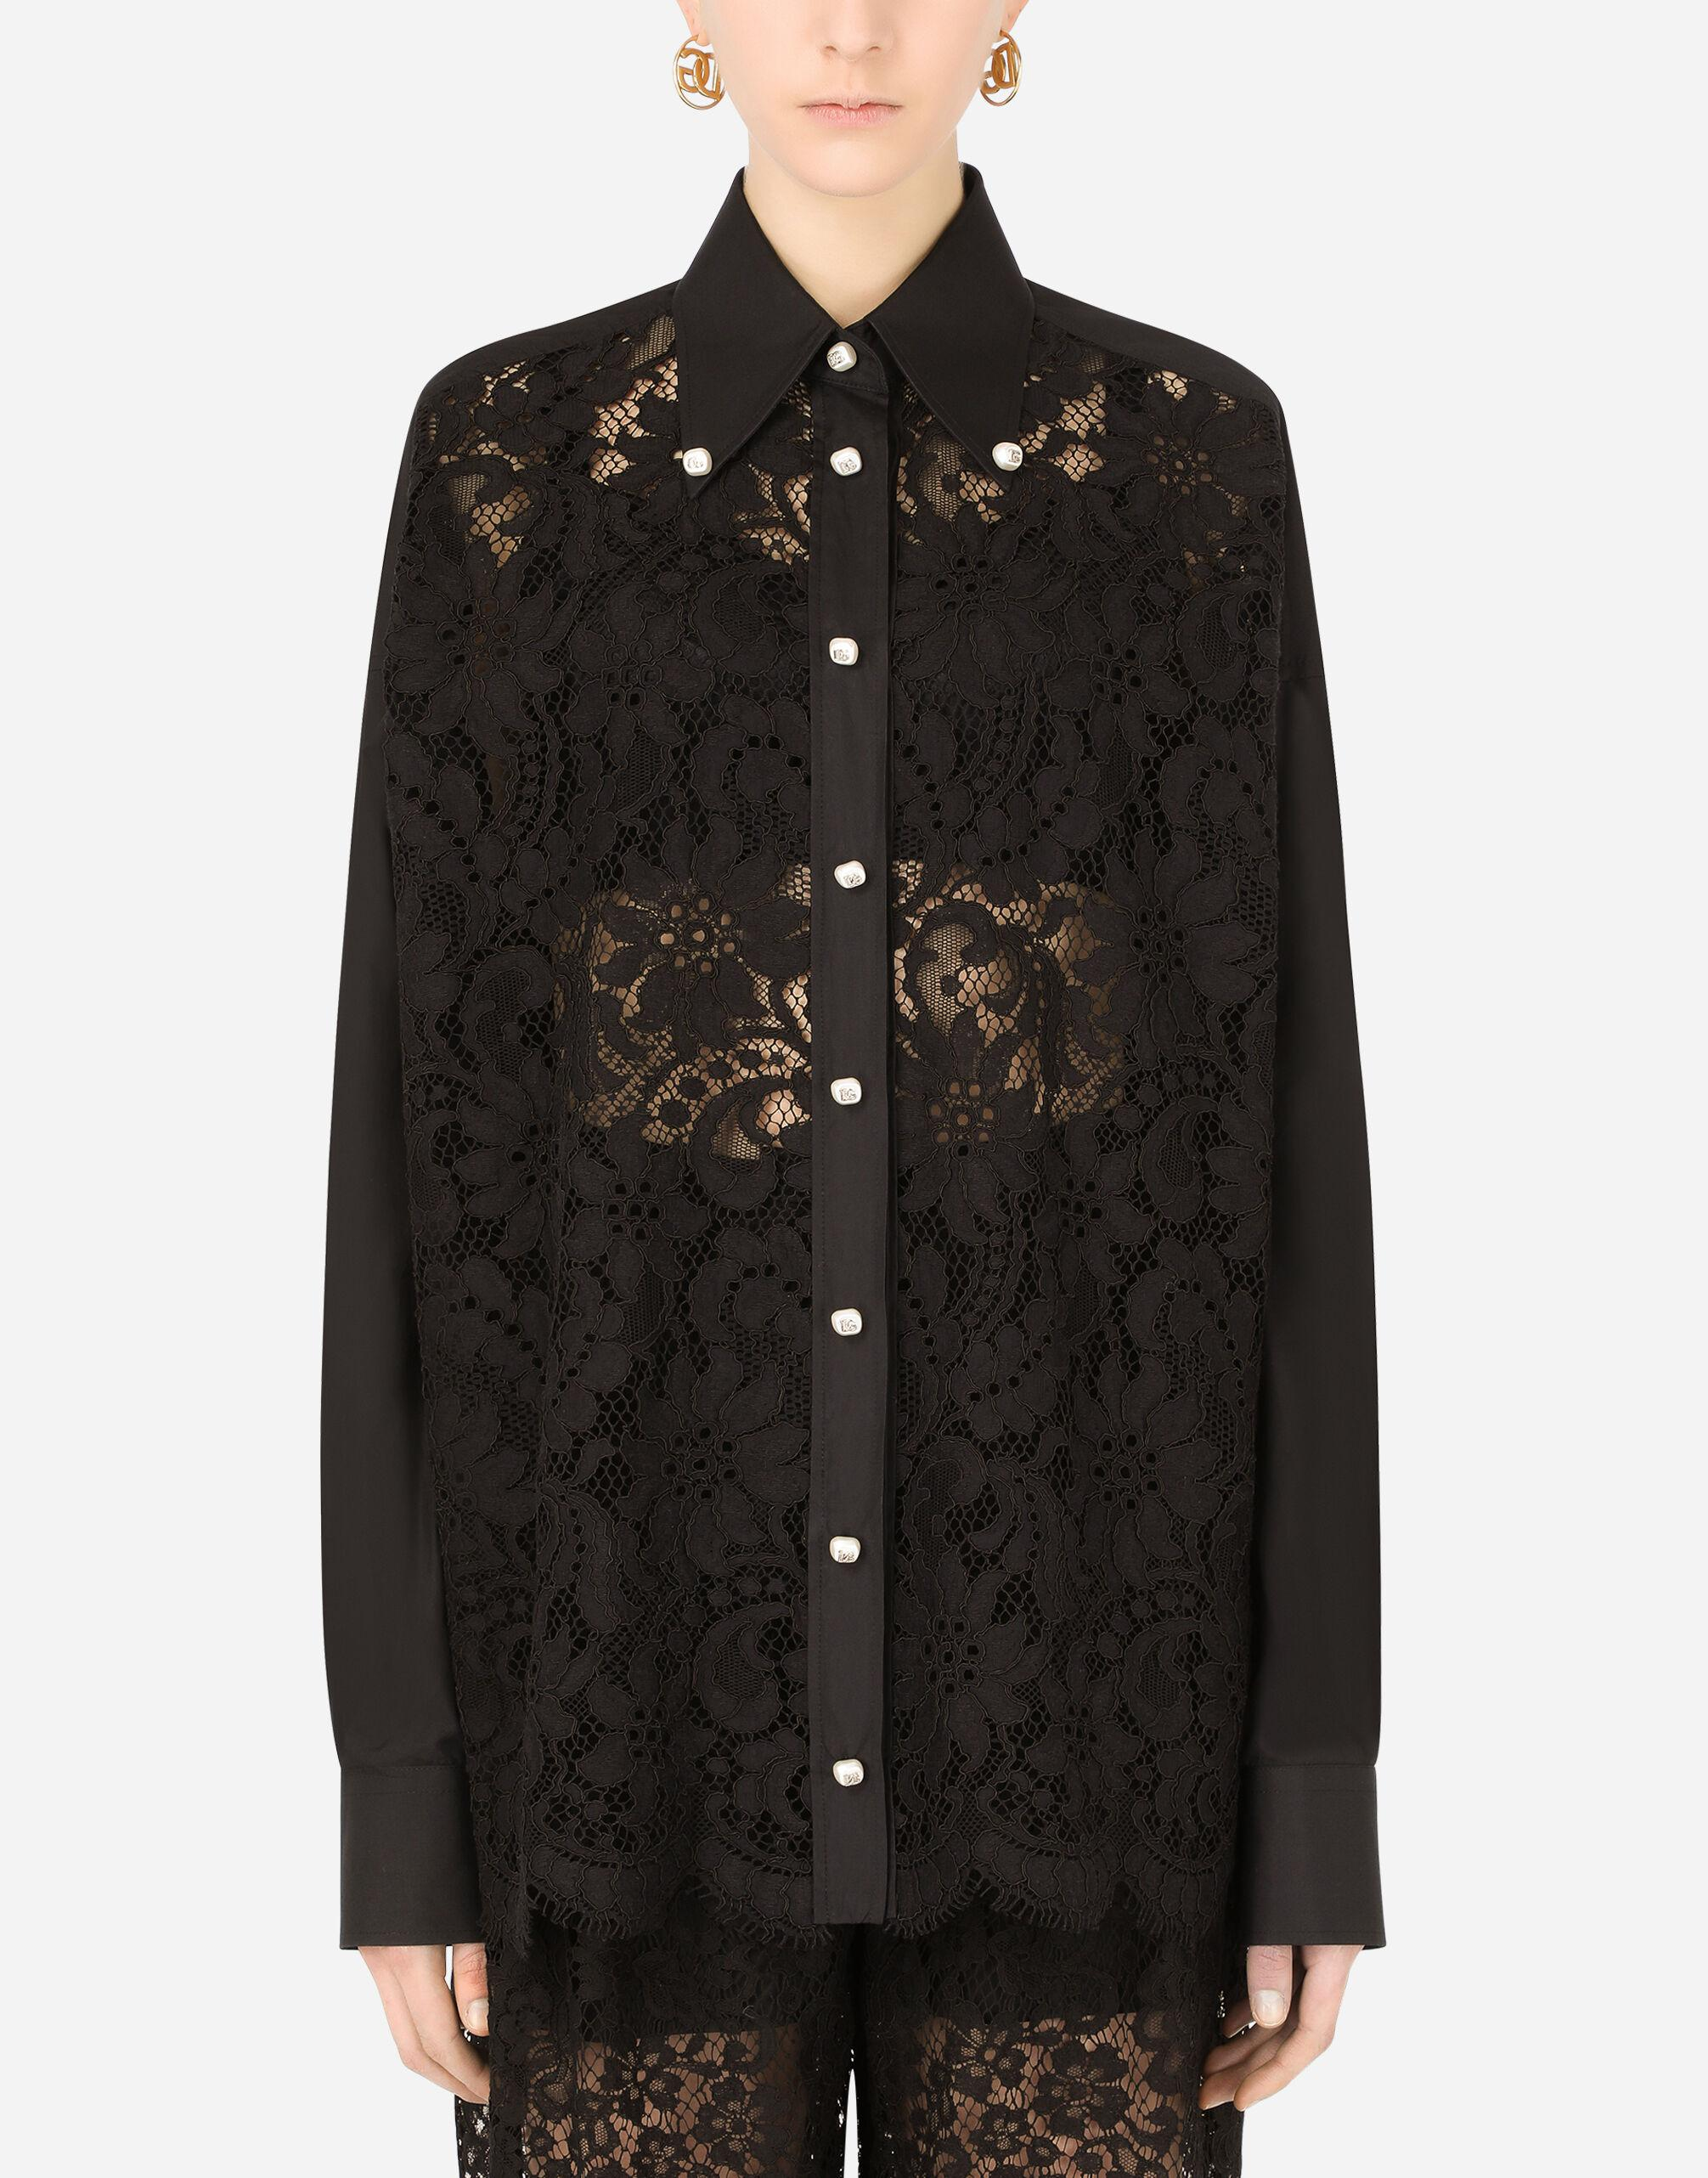 Poplin and lace shirt with DG buttons